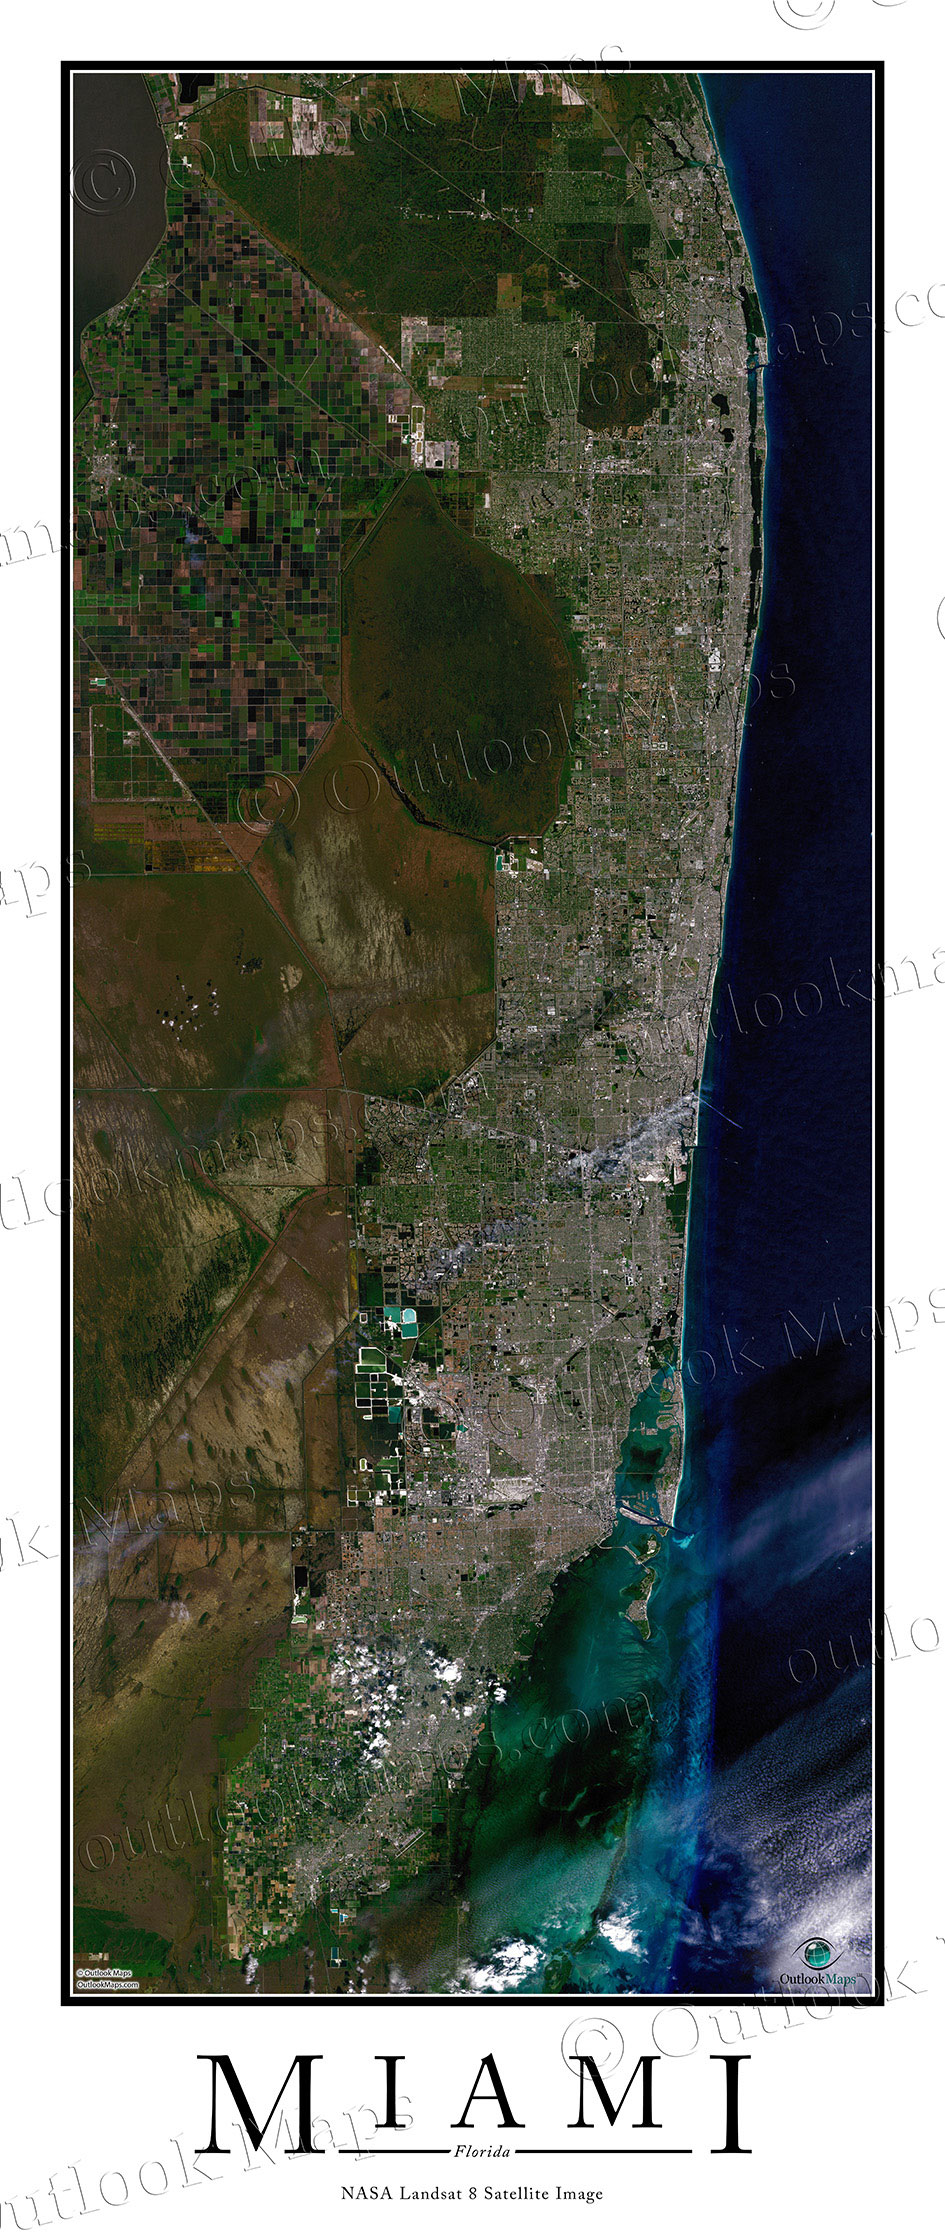 Miami FL Area Satellite Map Print Aerial Image Poster - Florida map miami area